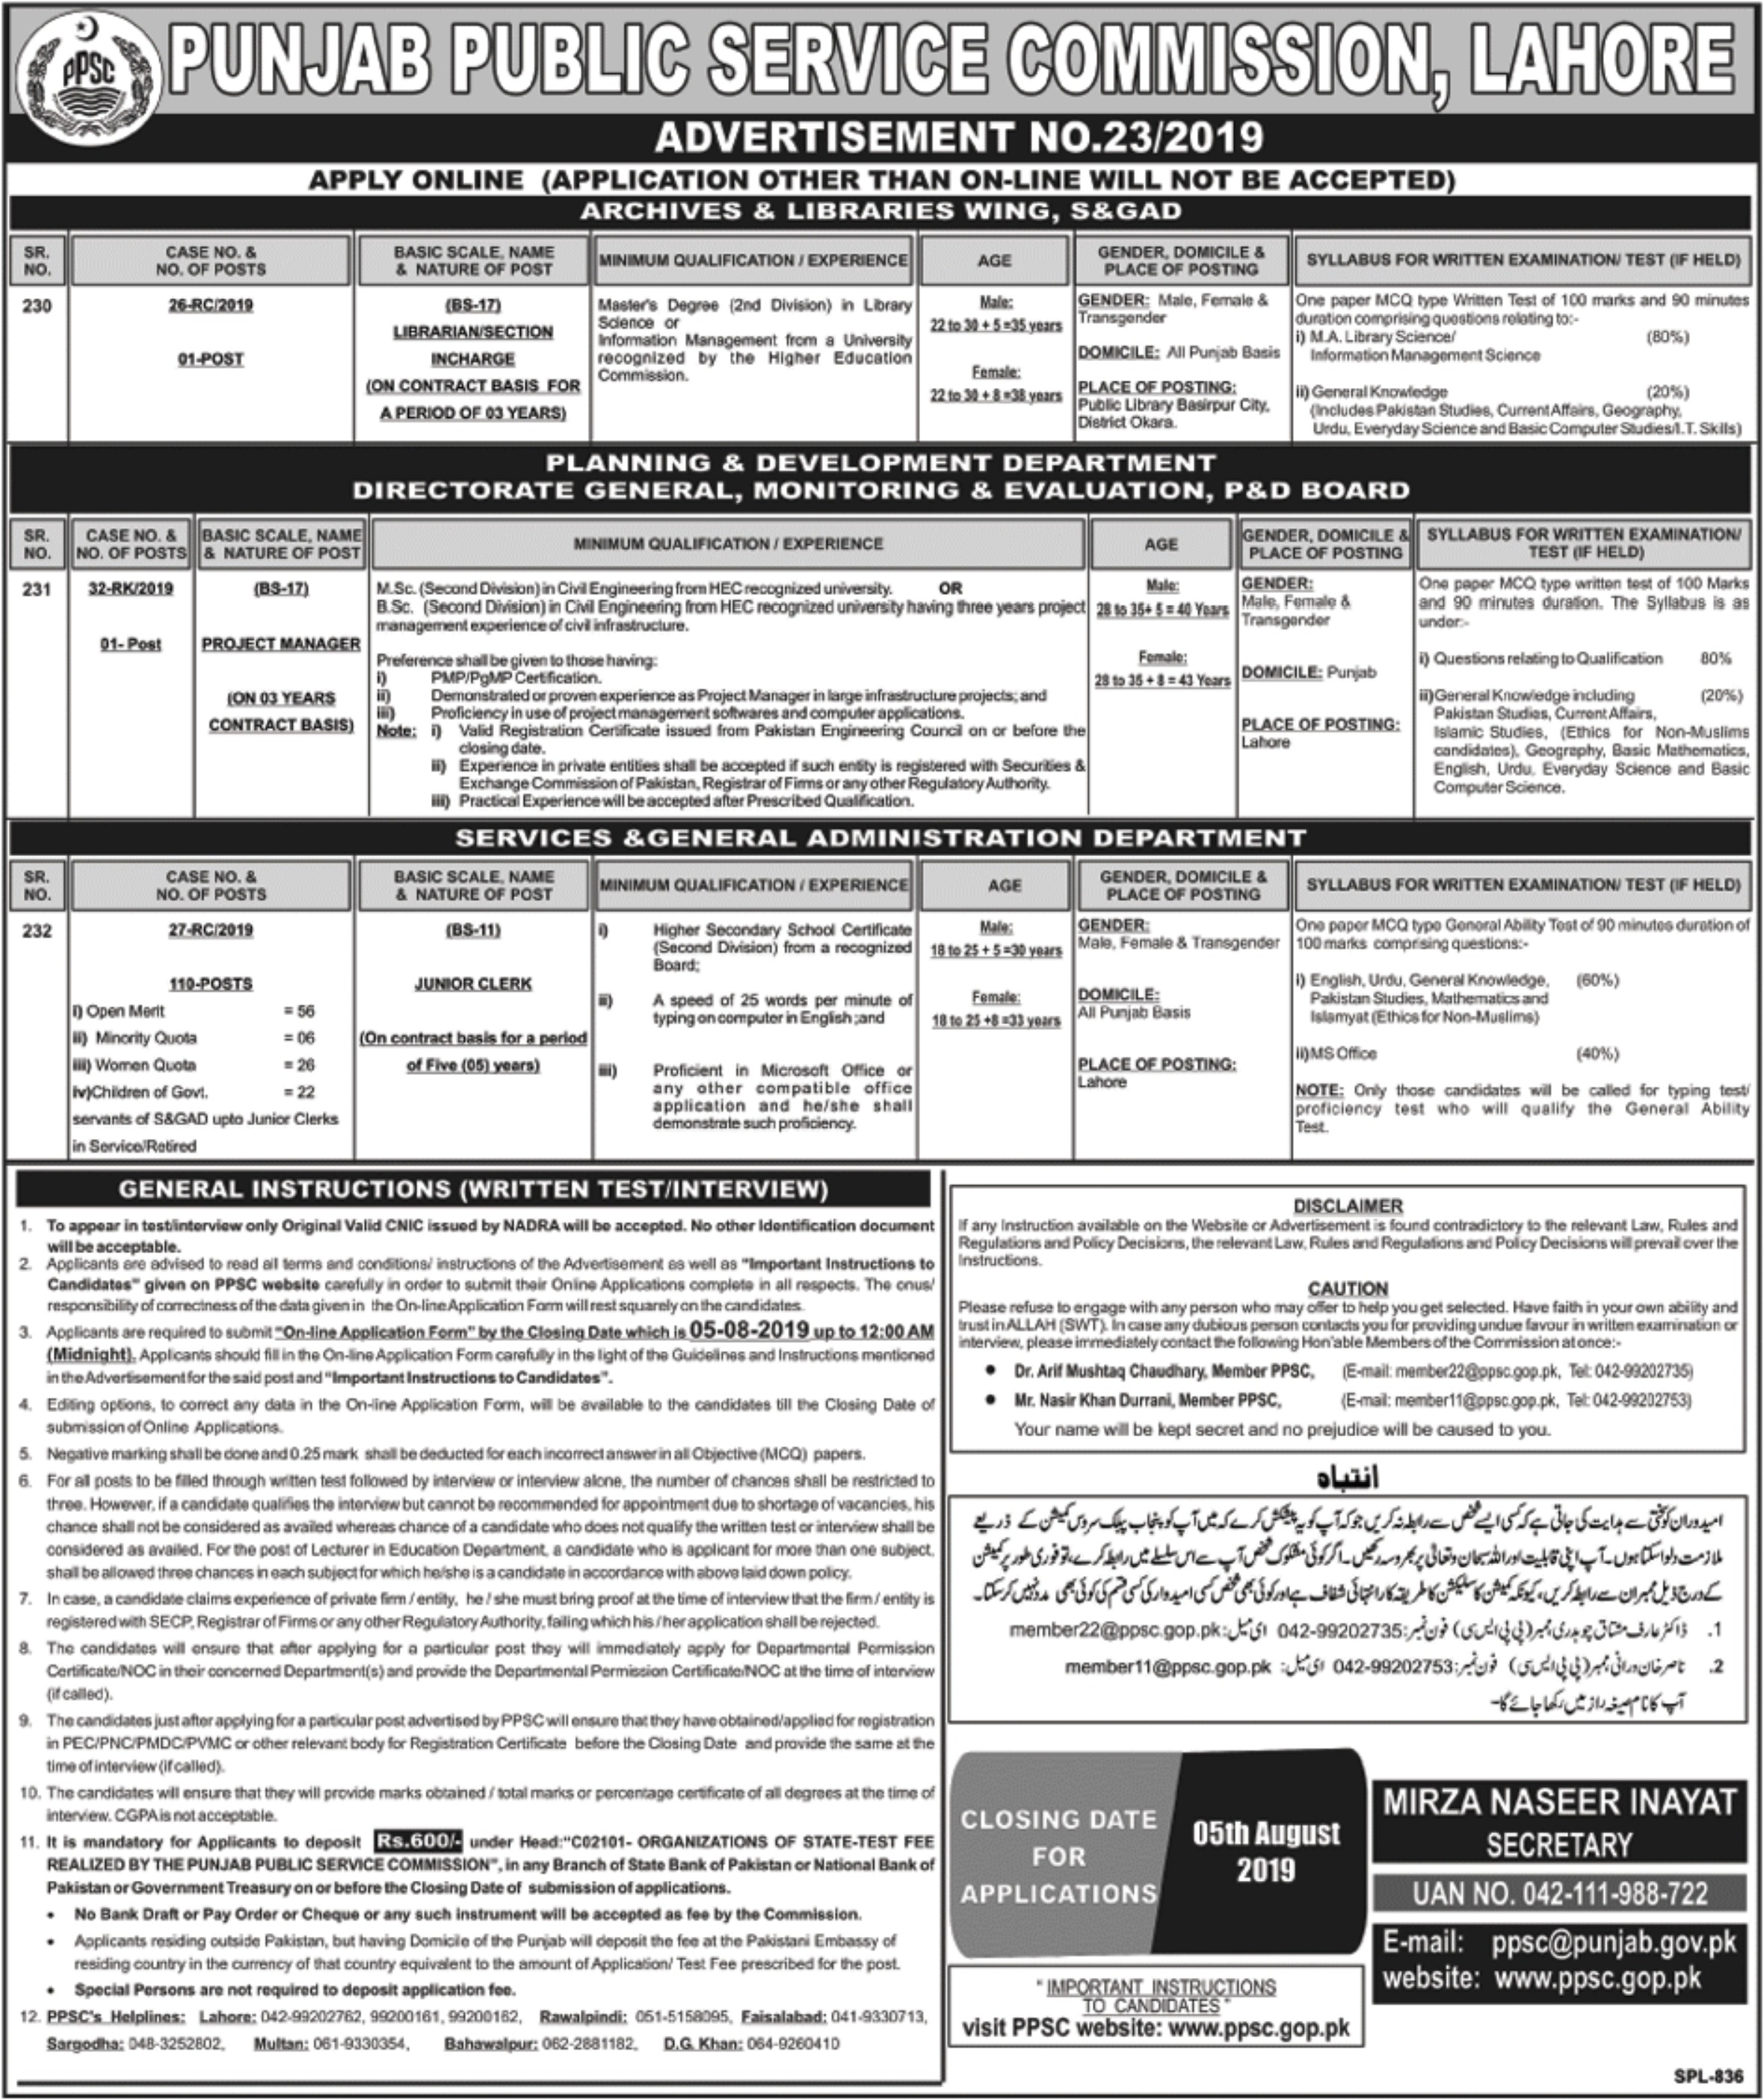 Punjab Public Service Commission PPSC Jobs 2019 Junior Clerk S&GAD Apply Online